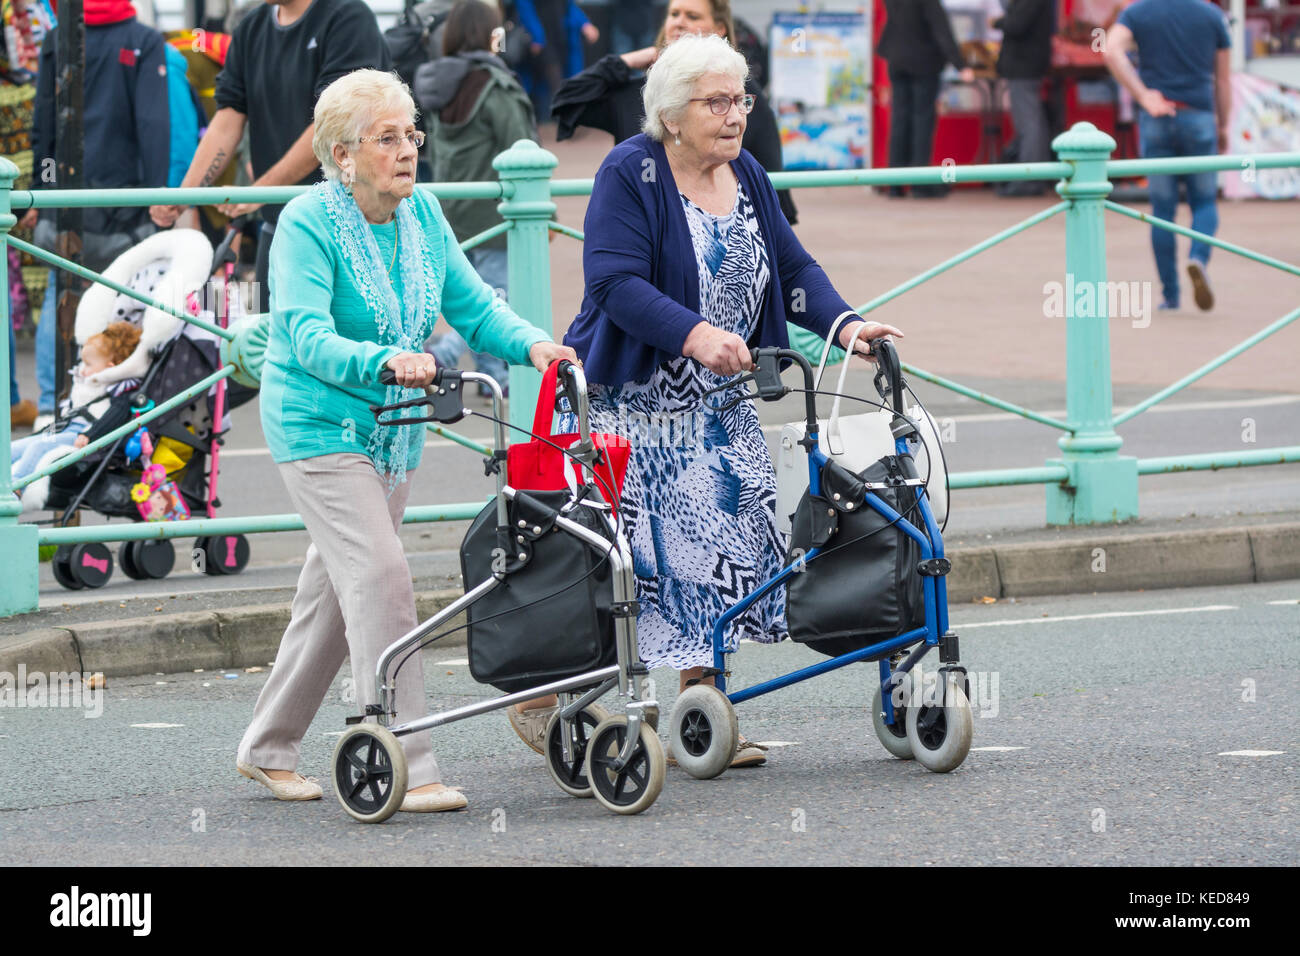 Elderly women crossing a road with wheeled walkers in Brighton, East Sussex, England, UK. Zimmer frame. Rollator. - Stock Image